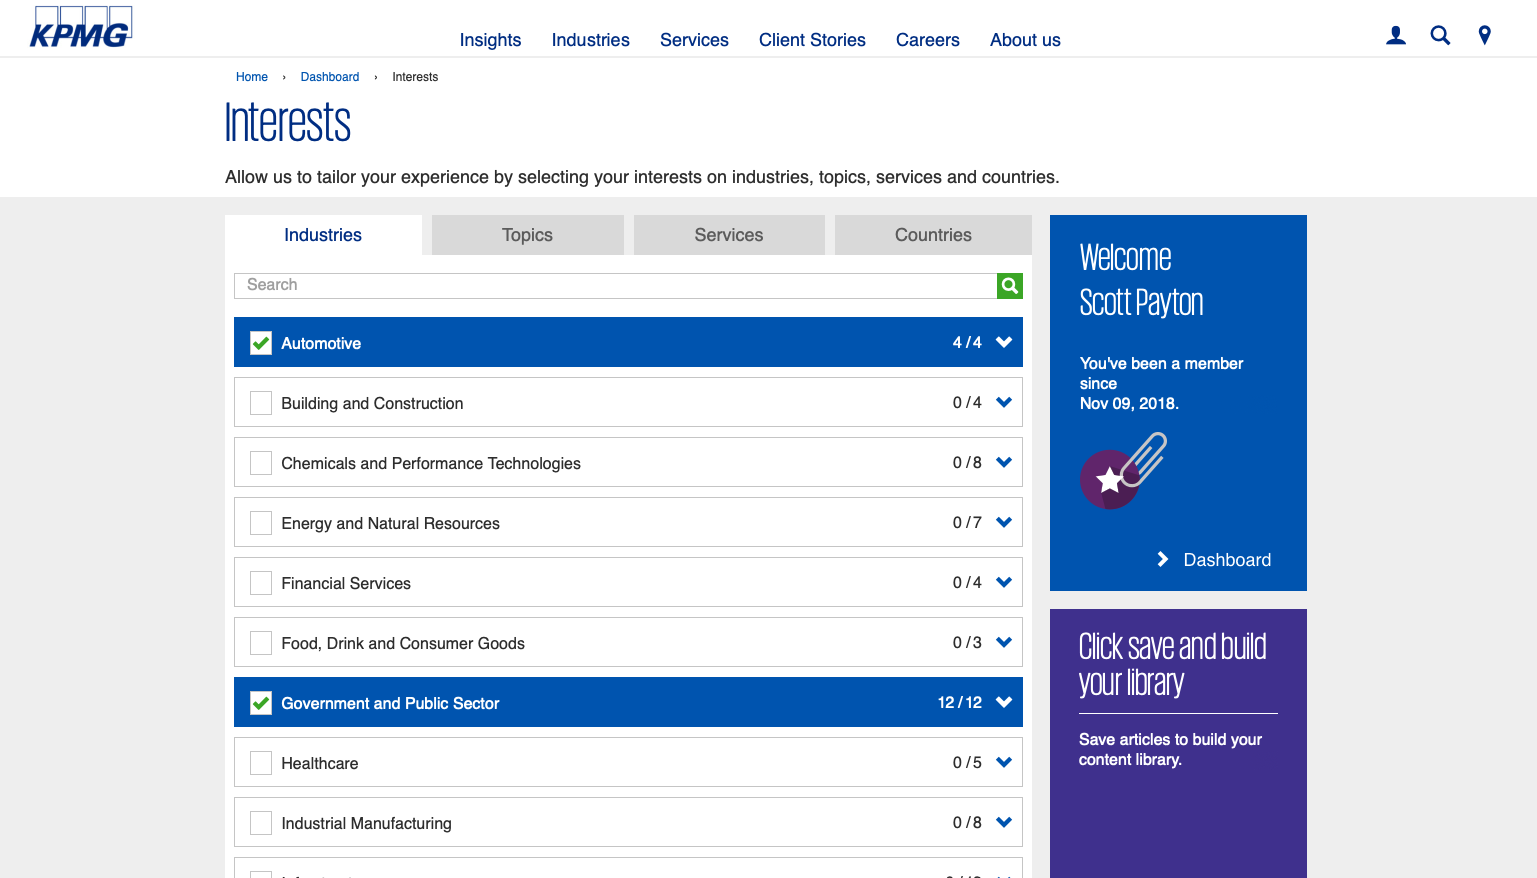 KPMG is experimenting with personalisation that is unusually sophisticated for a corporate website